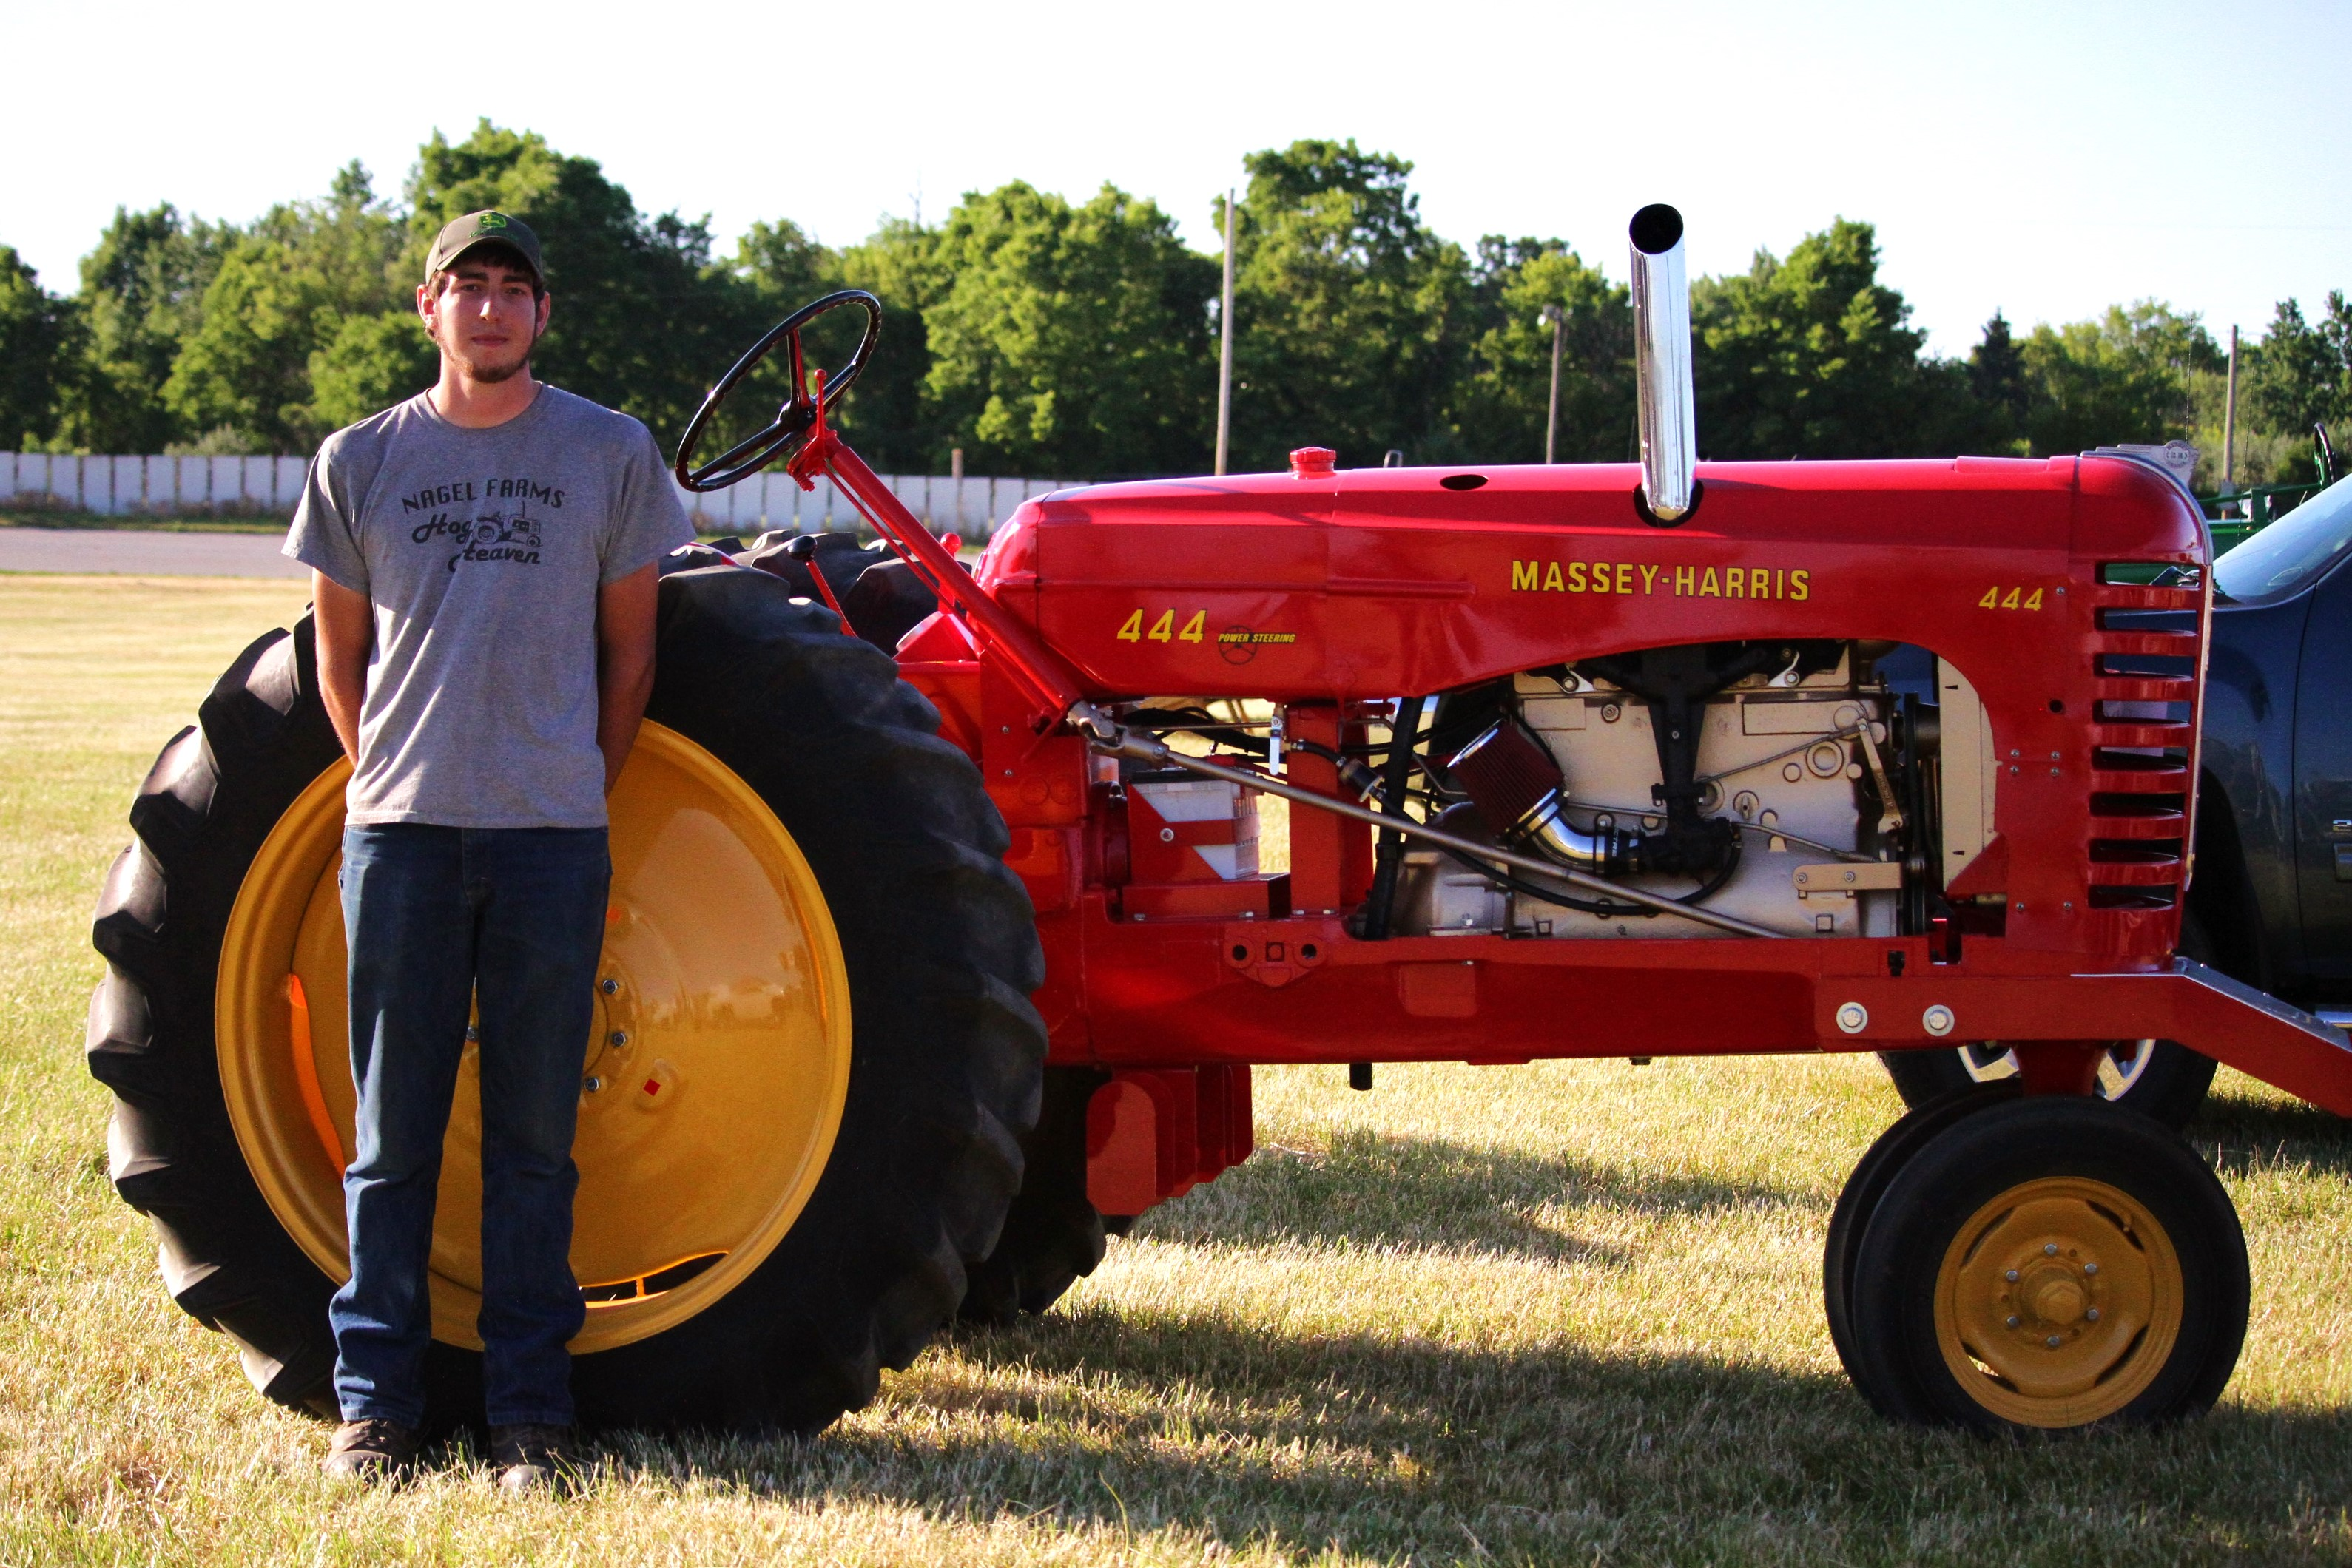 Tractor Pull Tractors : Antique tractor pull highlights second day of farm